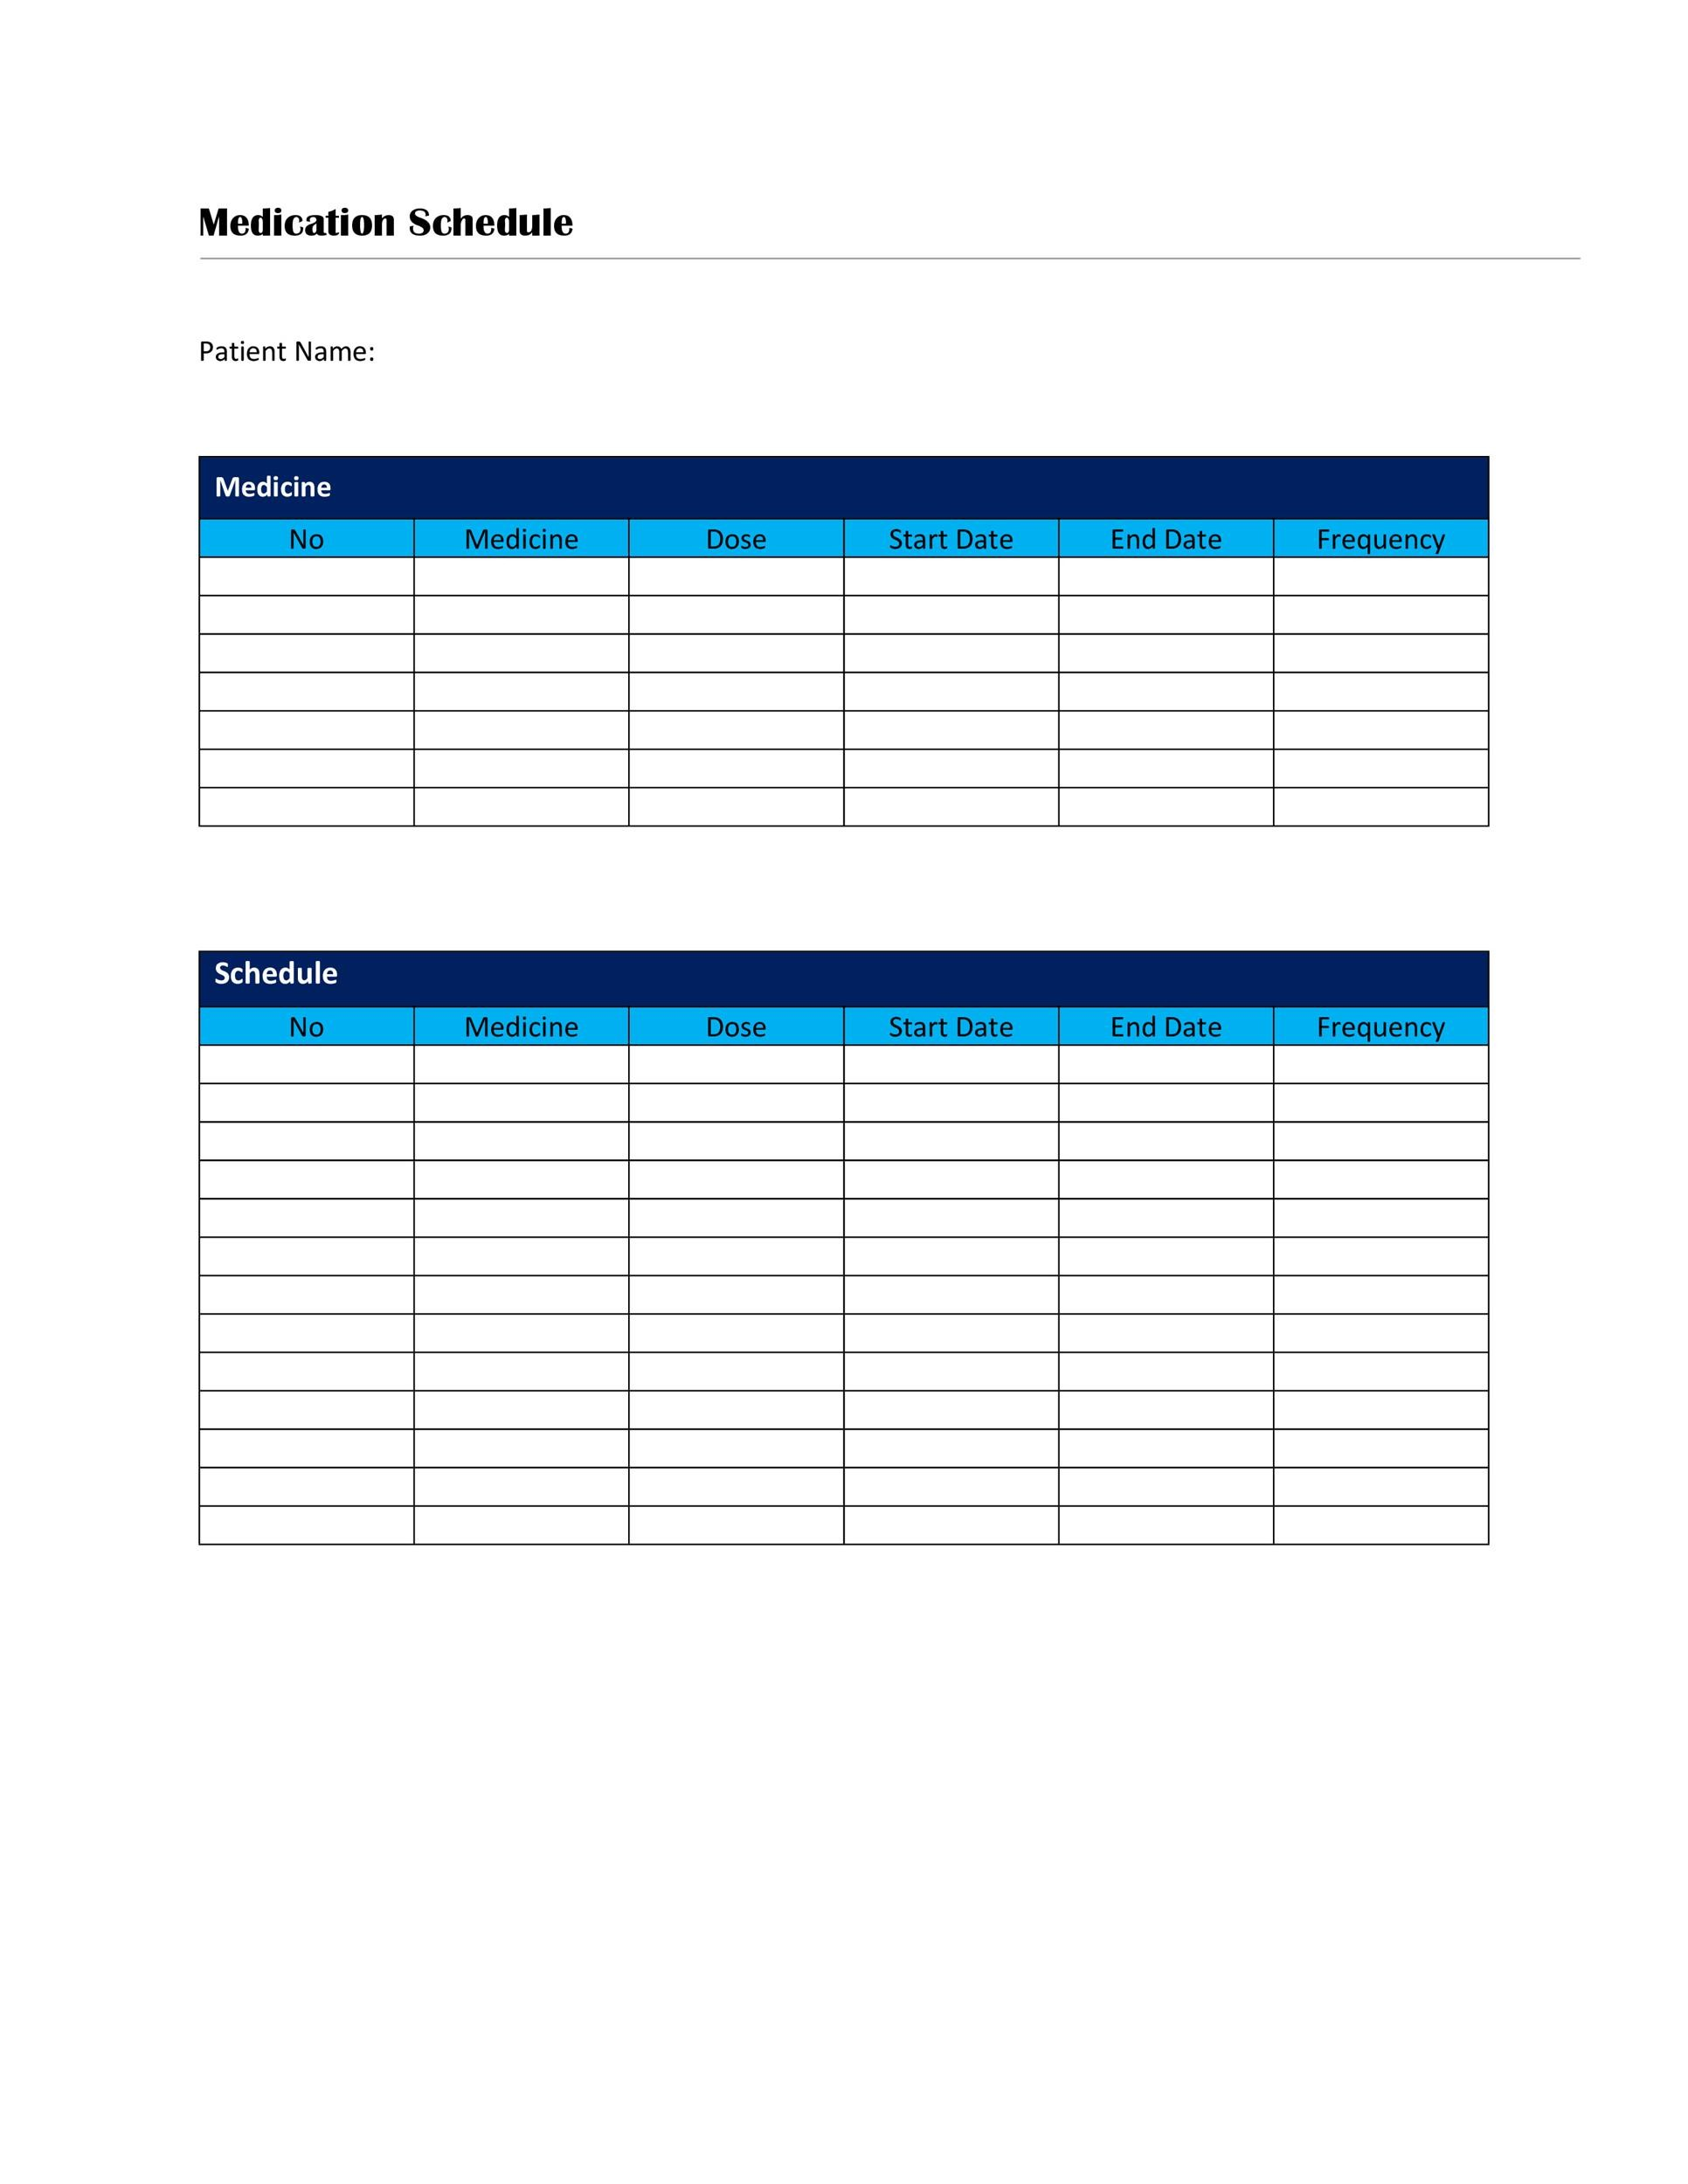 Free medication schedule template 35